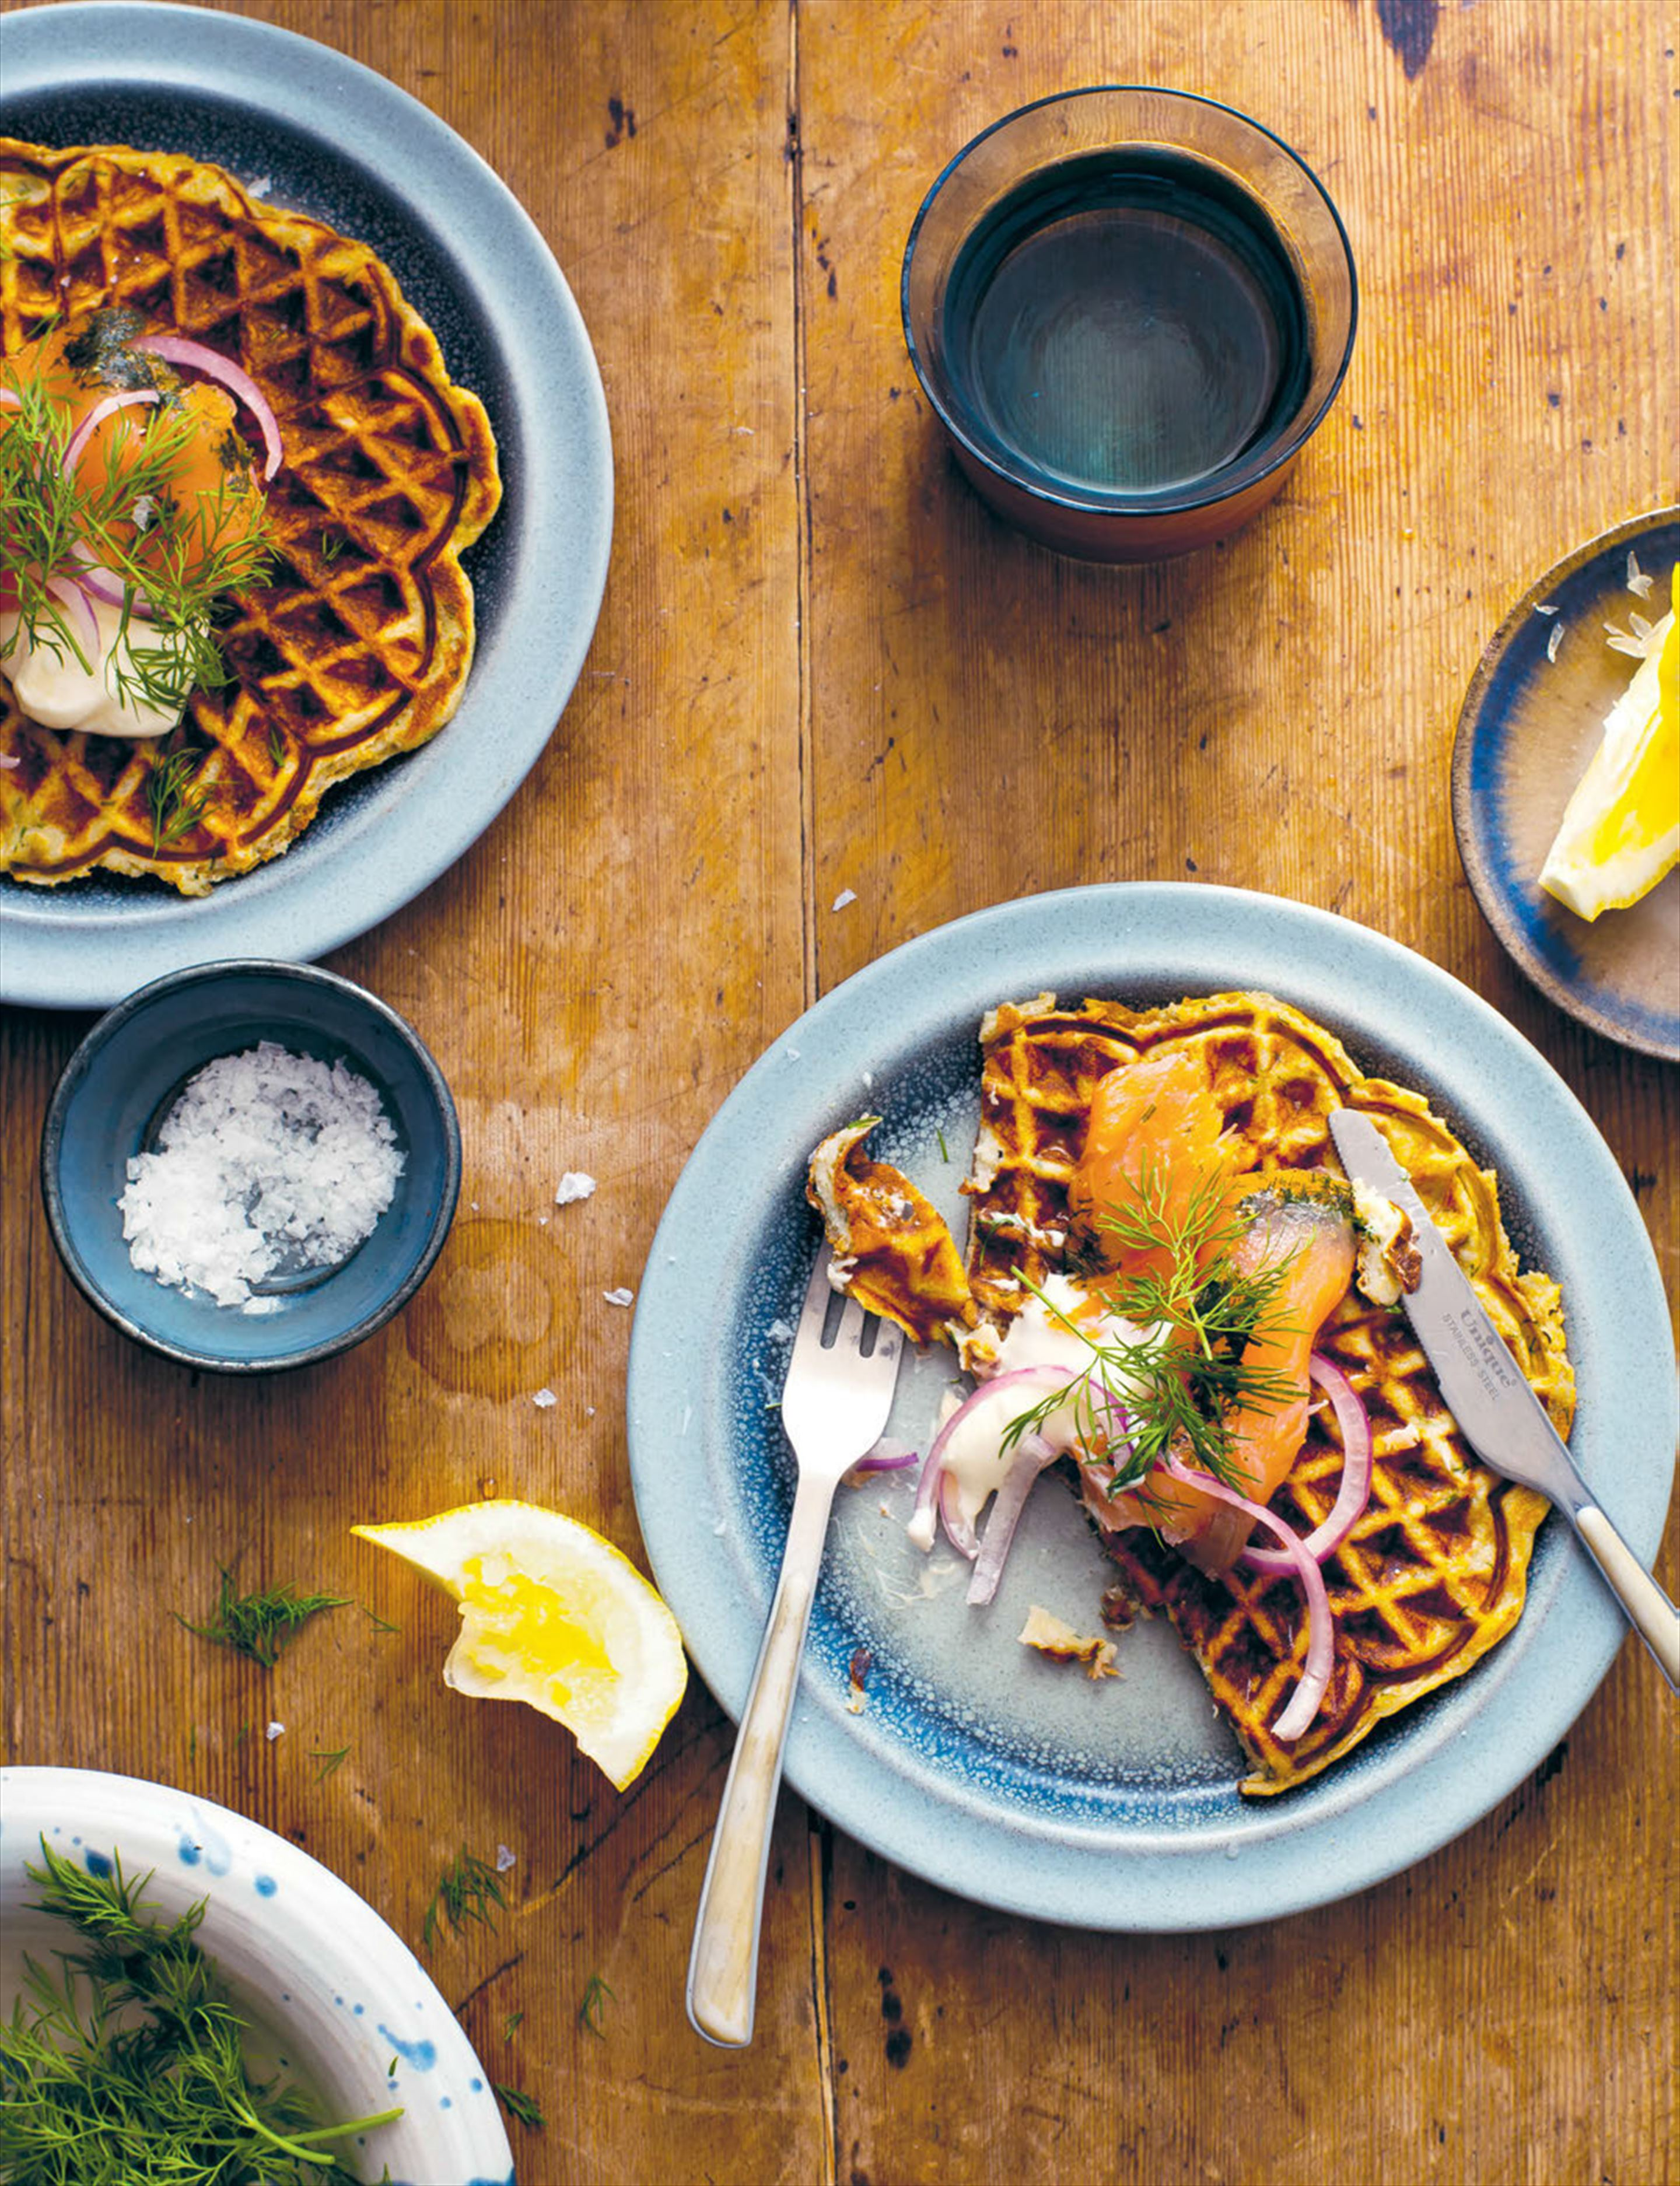 Potato waffles & gravlax